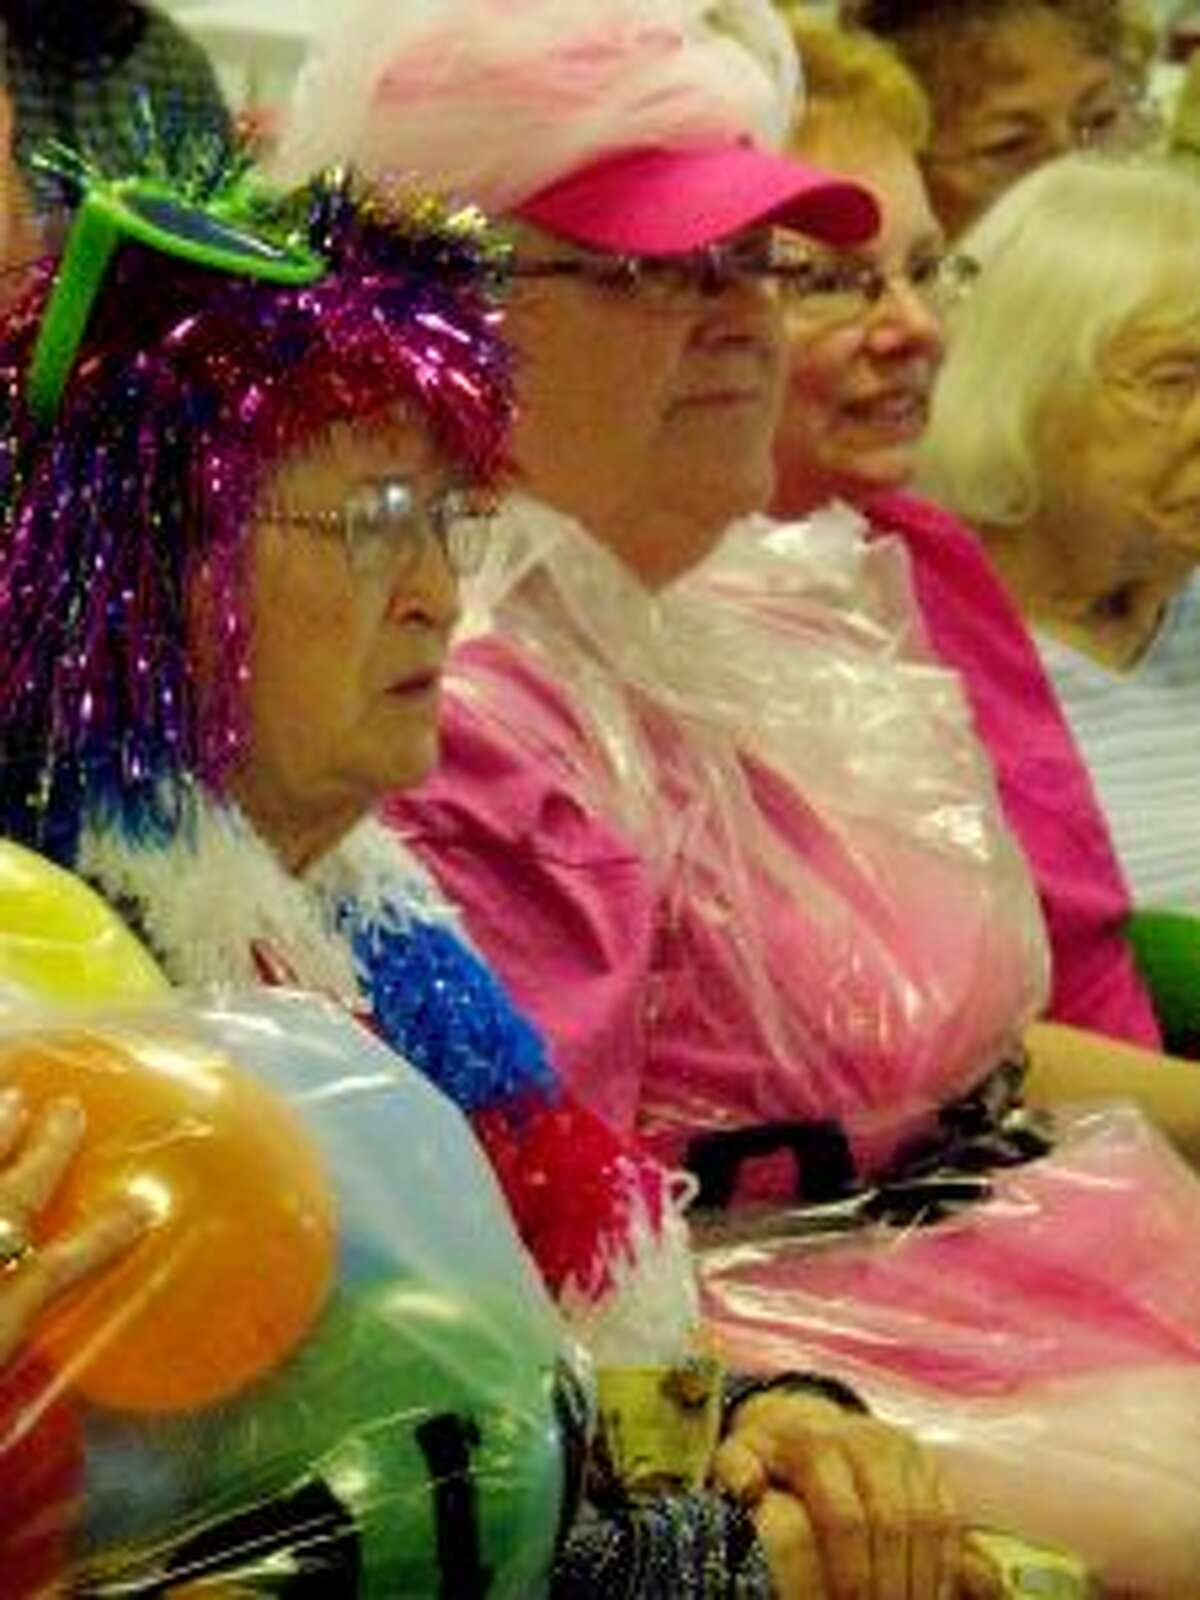 Seniors dressed to the nines for the popular Wheelin' and Dealin' with Johnny O at the Manistee Senior Center this week.